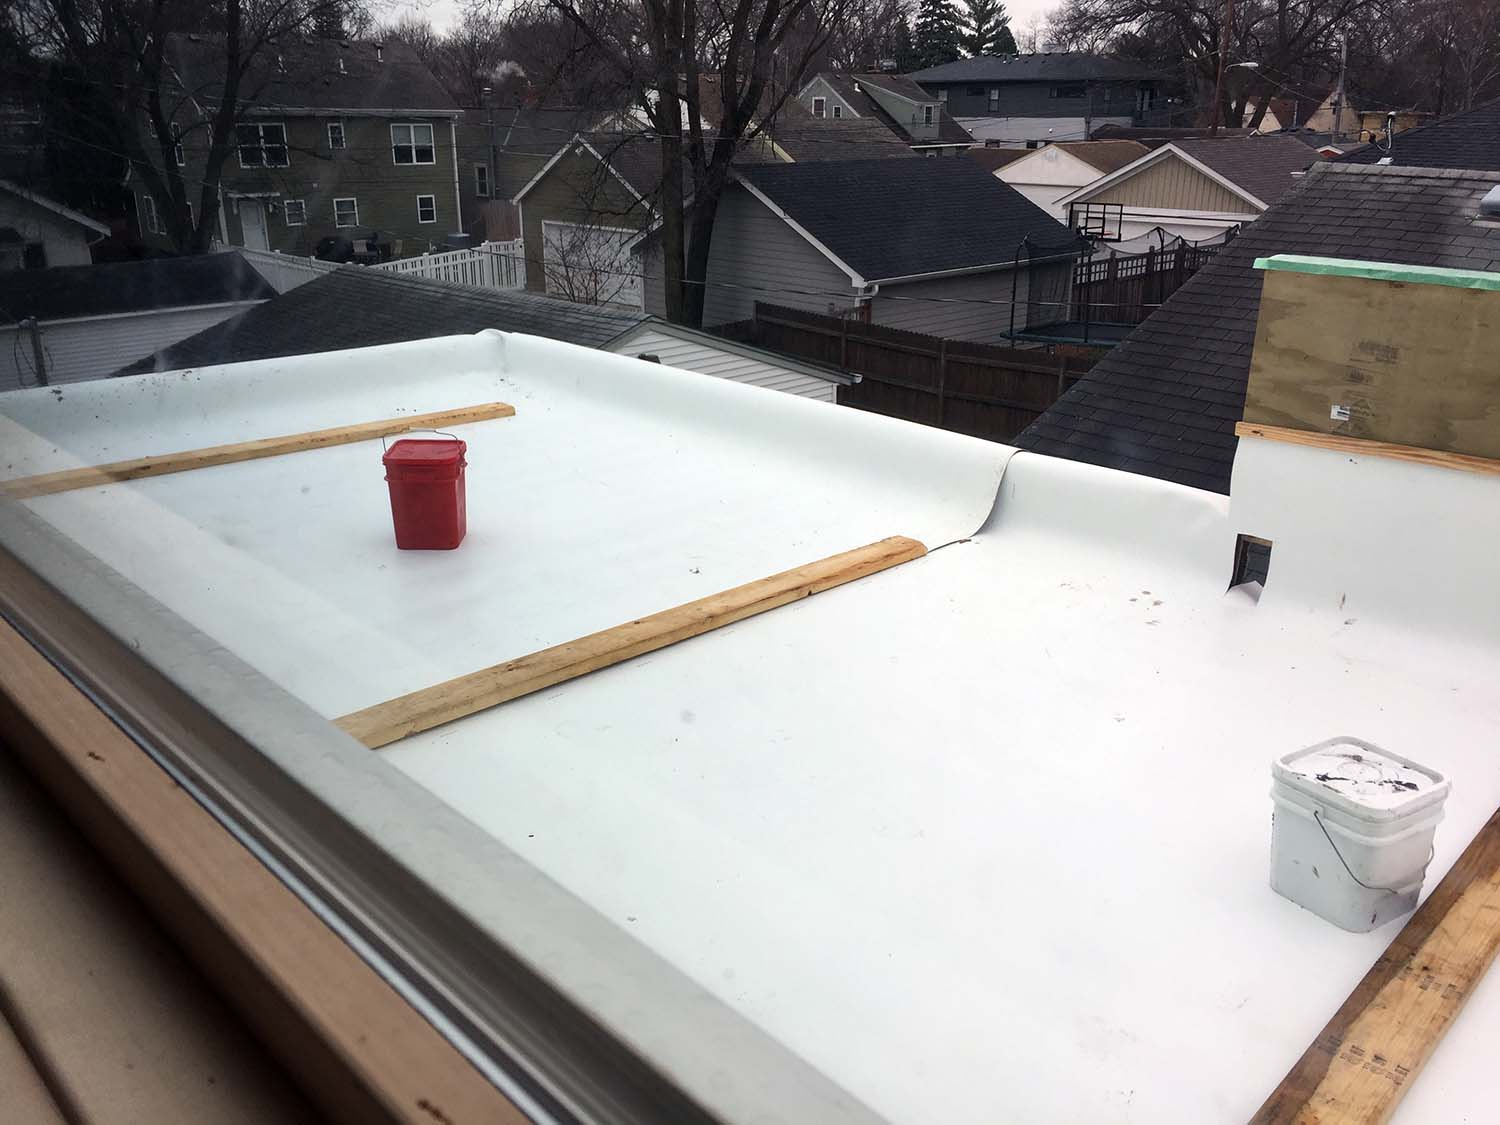 """Sheets of Thermoplastic Polyolefin membrane, pre-seam welding, cap flashing and termination bars. The white color, where not covered, will aid in minimizing heating up the immediate environment and support the idea of """"cool roofs""""."""